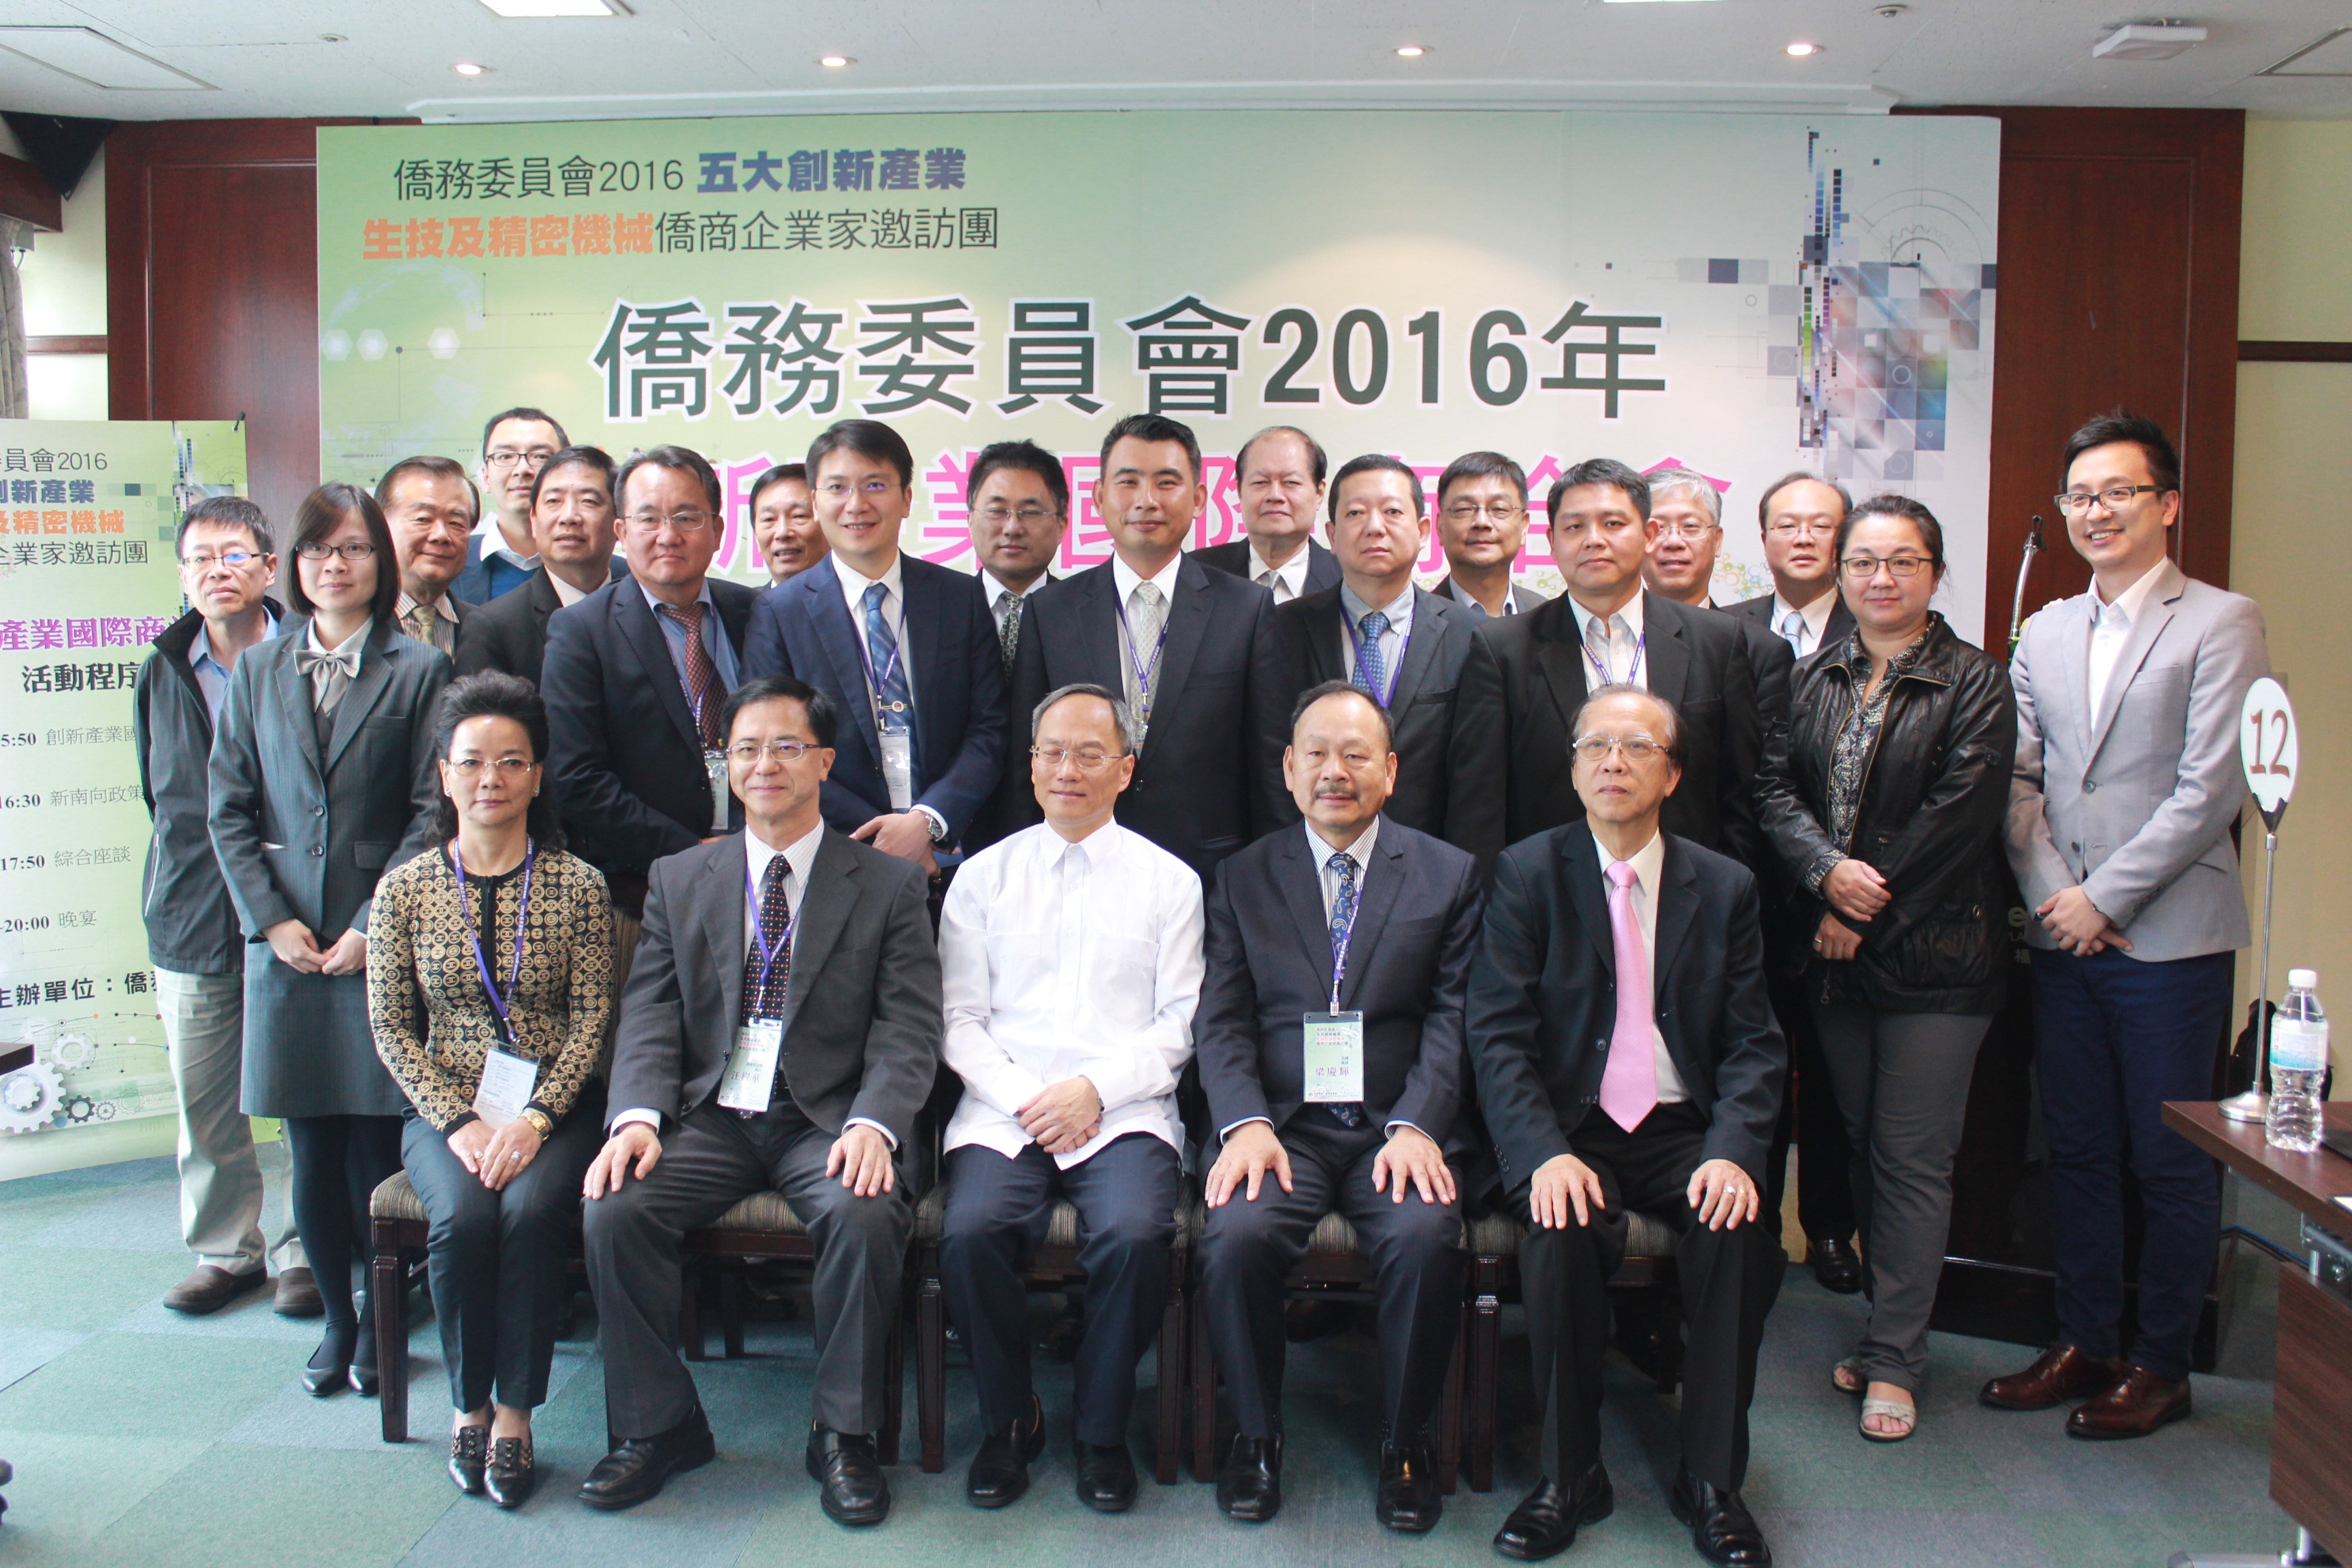 Minister Wu (3th on right) photographed with all the participants